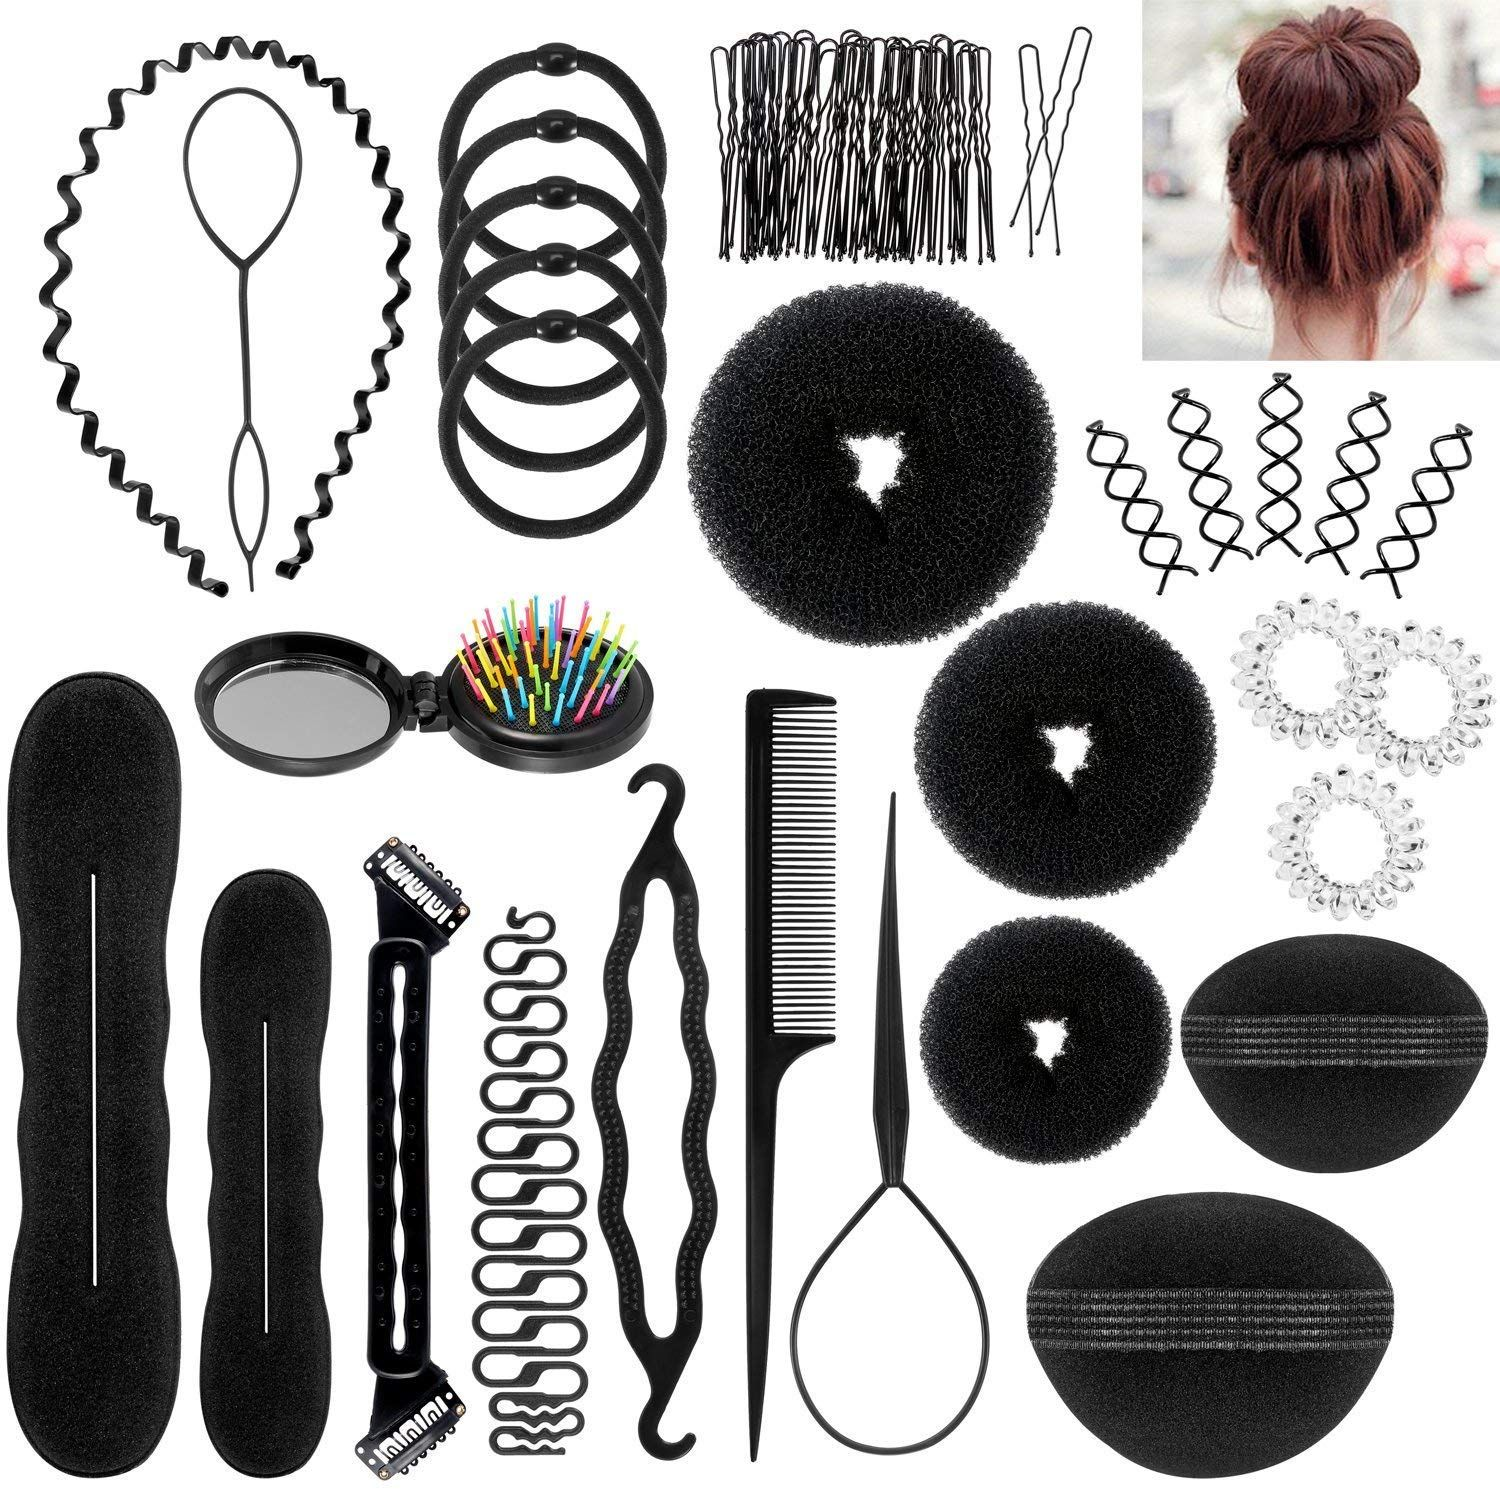 Hair Styling Accessories Set 28 Pcs Fashion Hair Design Styling Tools Kit Spiral Diy Hair Accesso Hair Accessories Pins Diy Hair Accessories Hair Braiding Tool